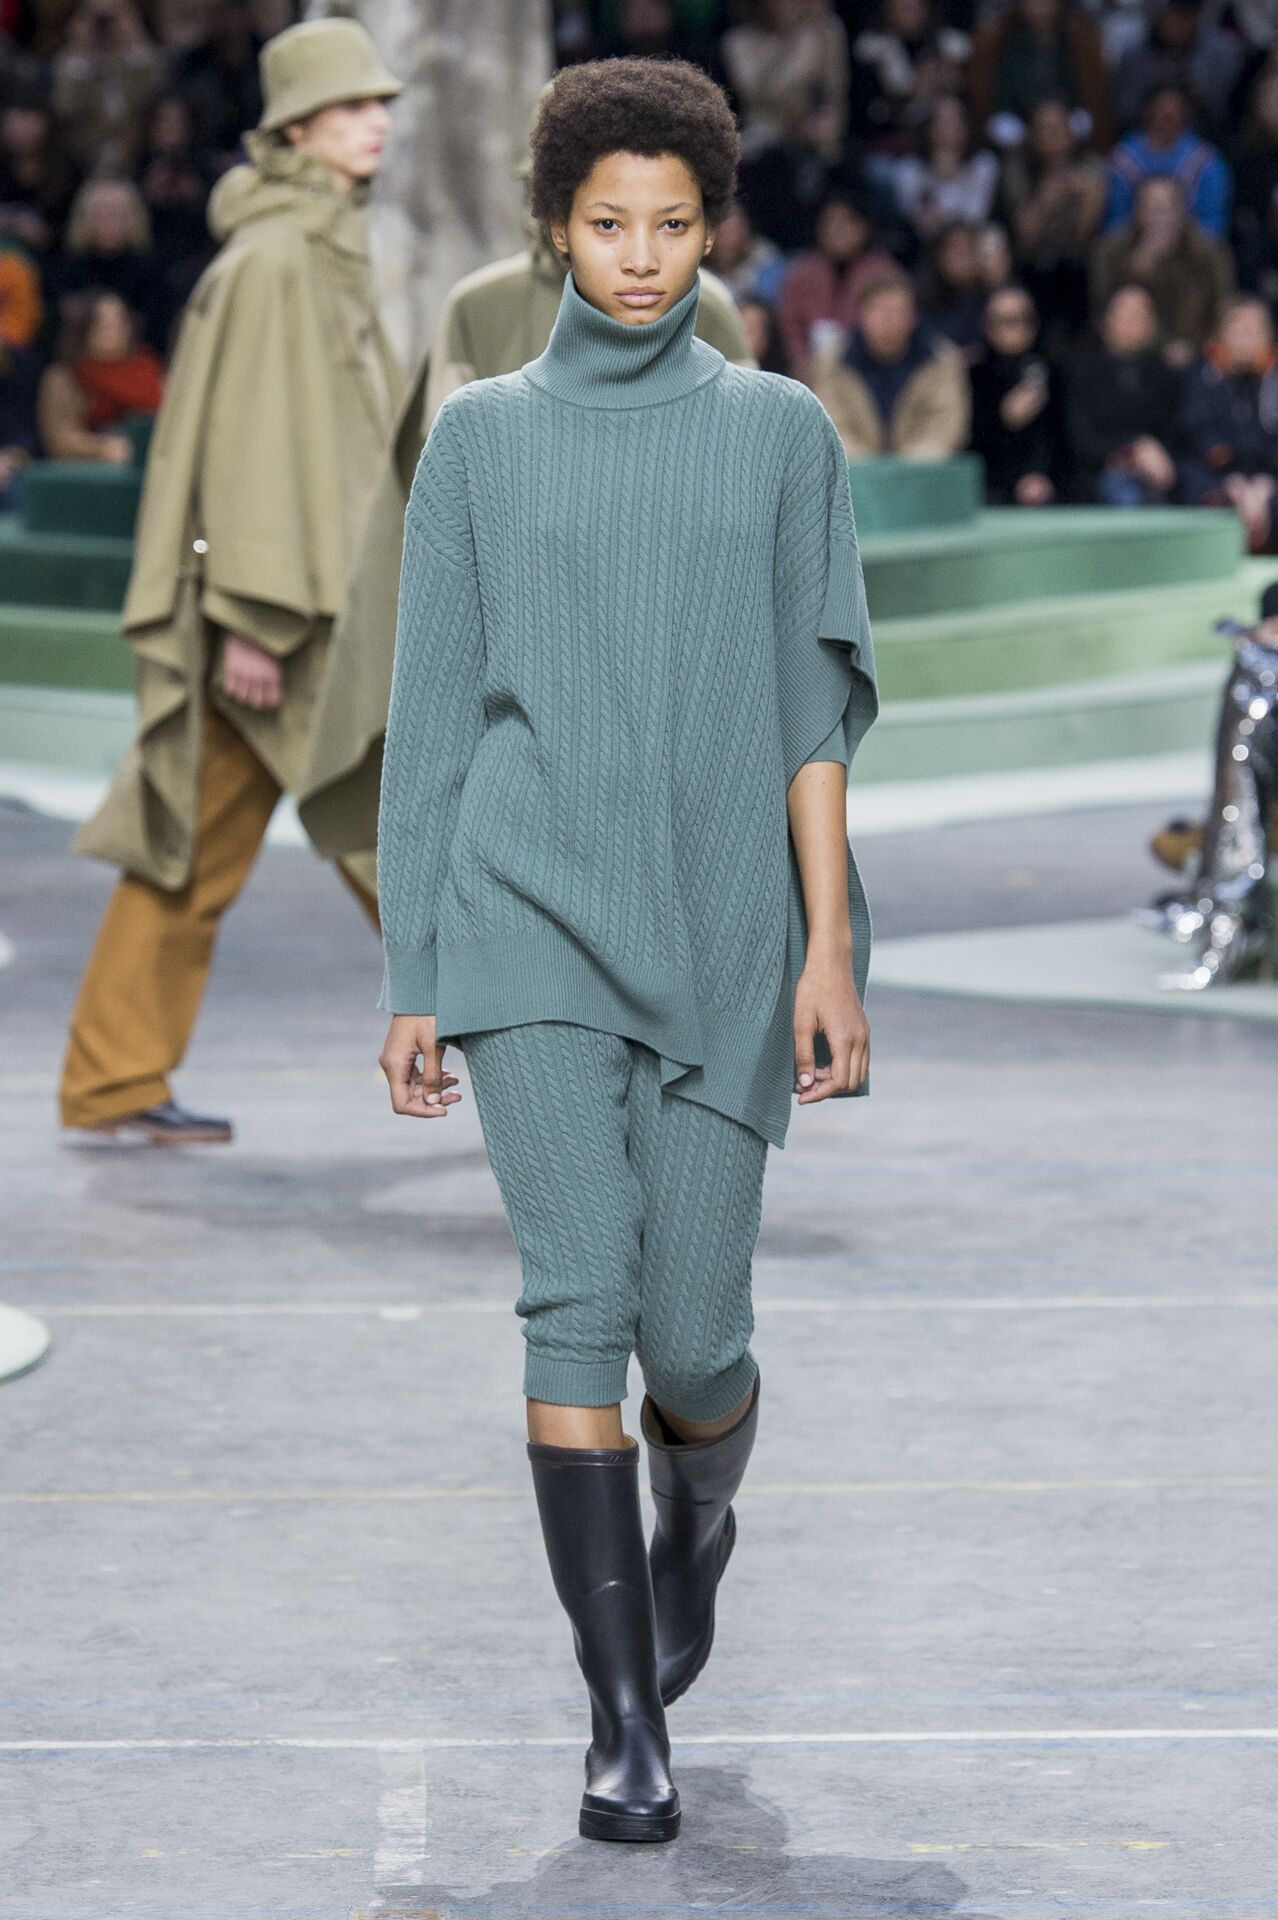 Woman FW 2018-19 Fashion Show Lacoste